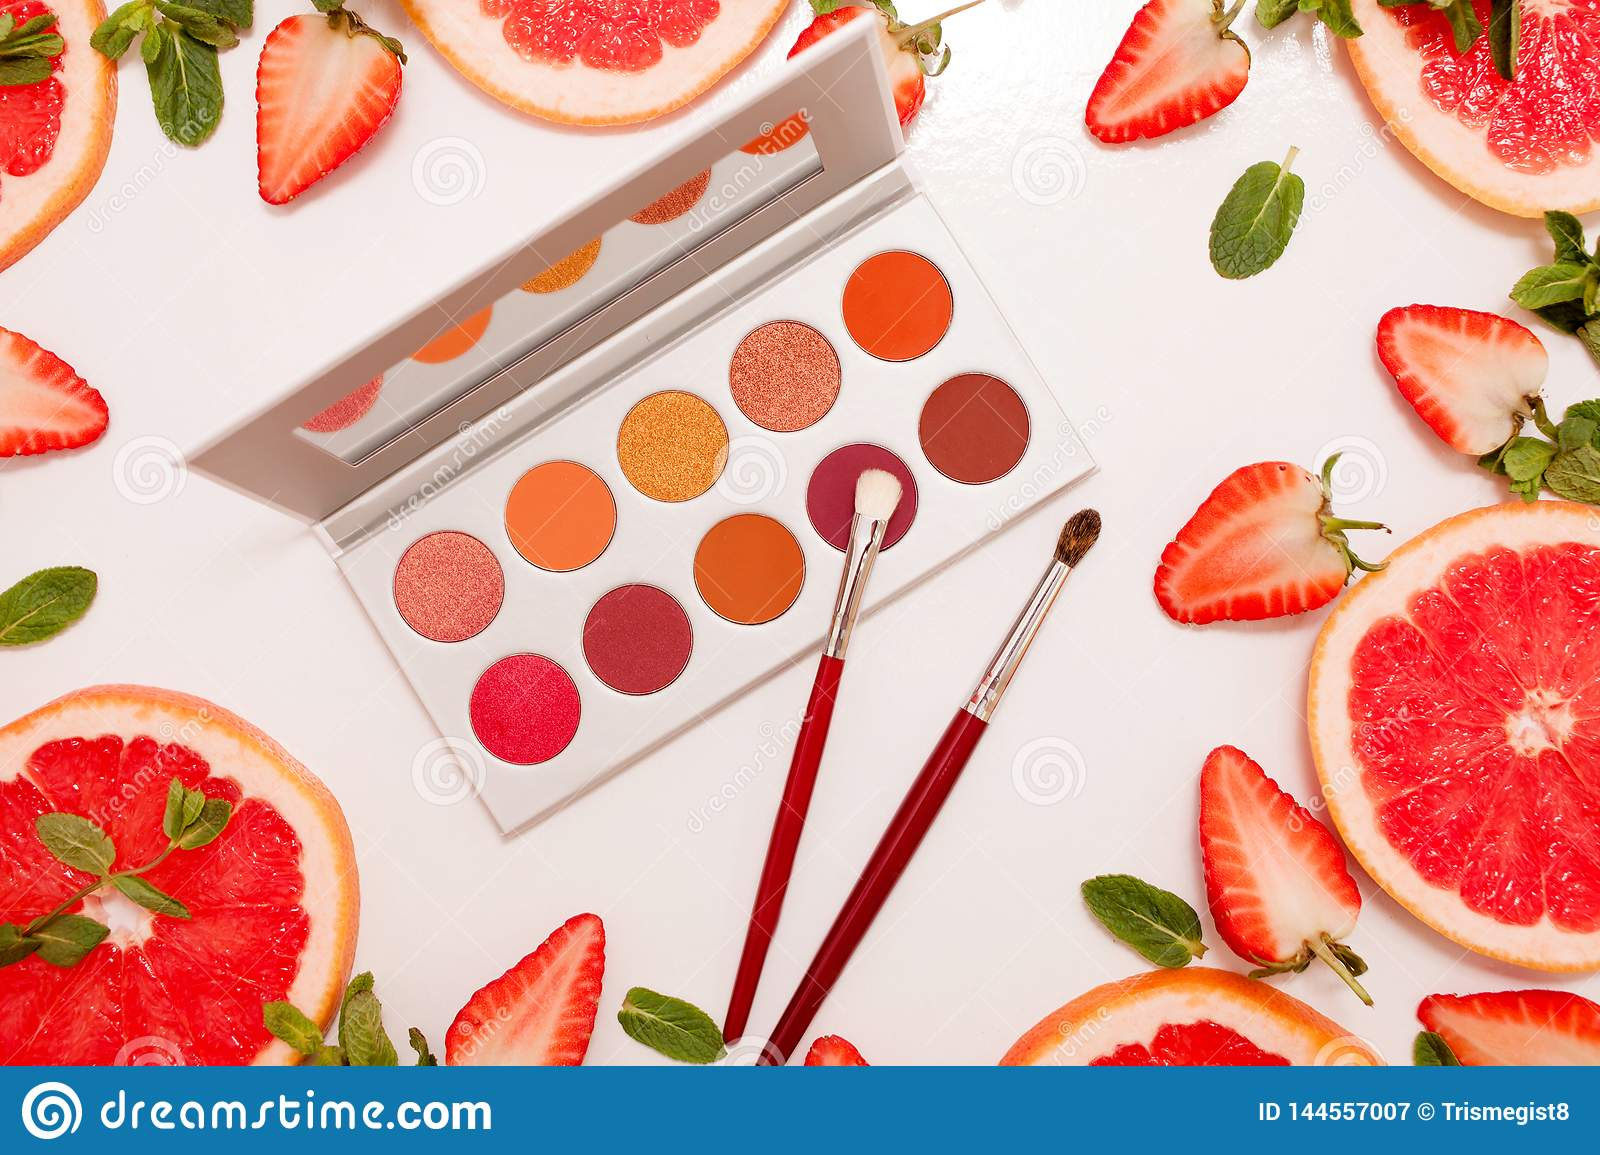 Cute flat lay with palette of cosmetics with fresh fruit, cut strawberries and grapefruit or red orange, mint leaves